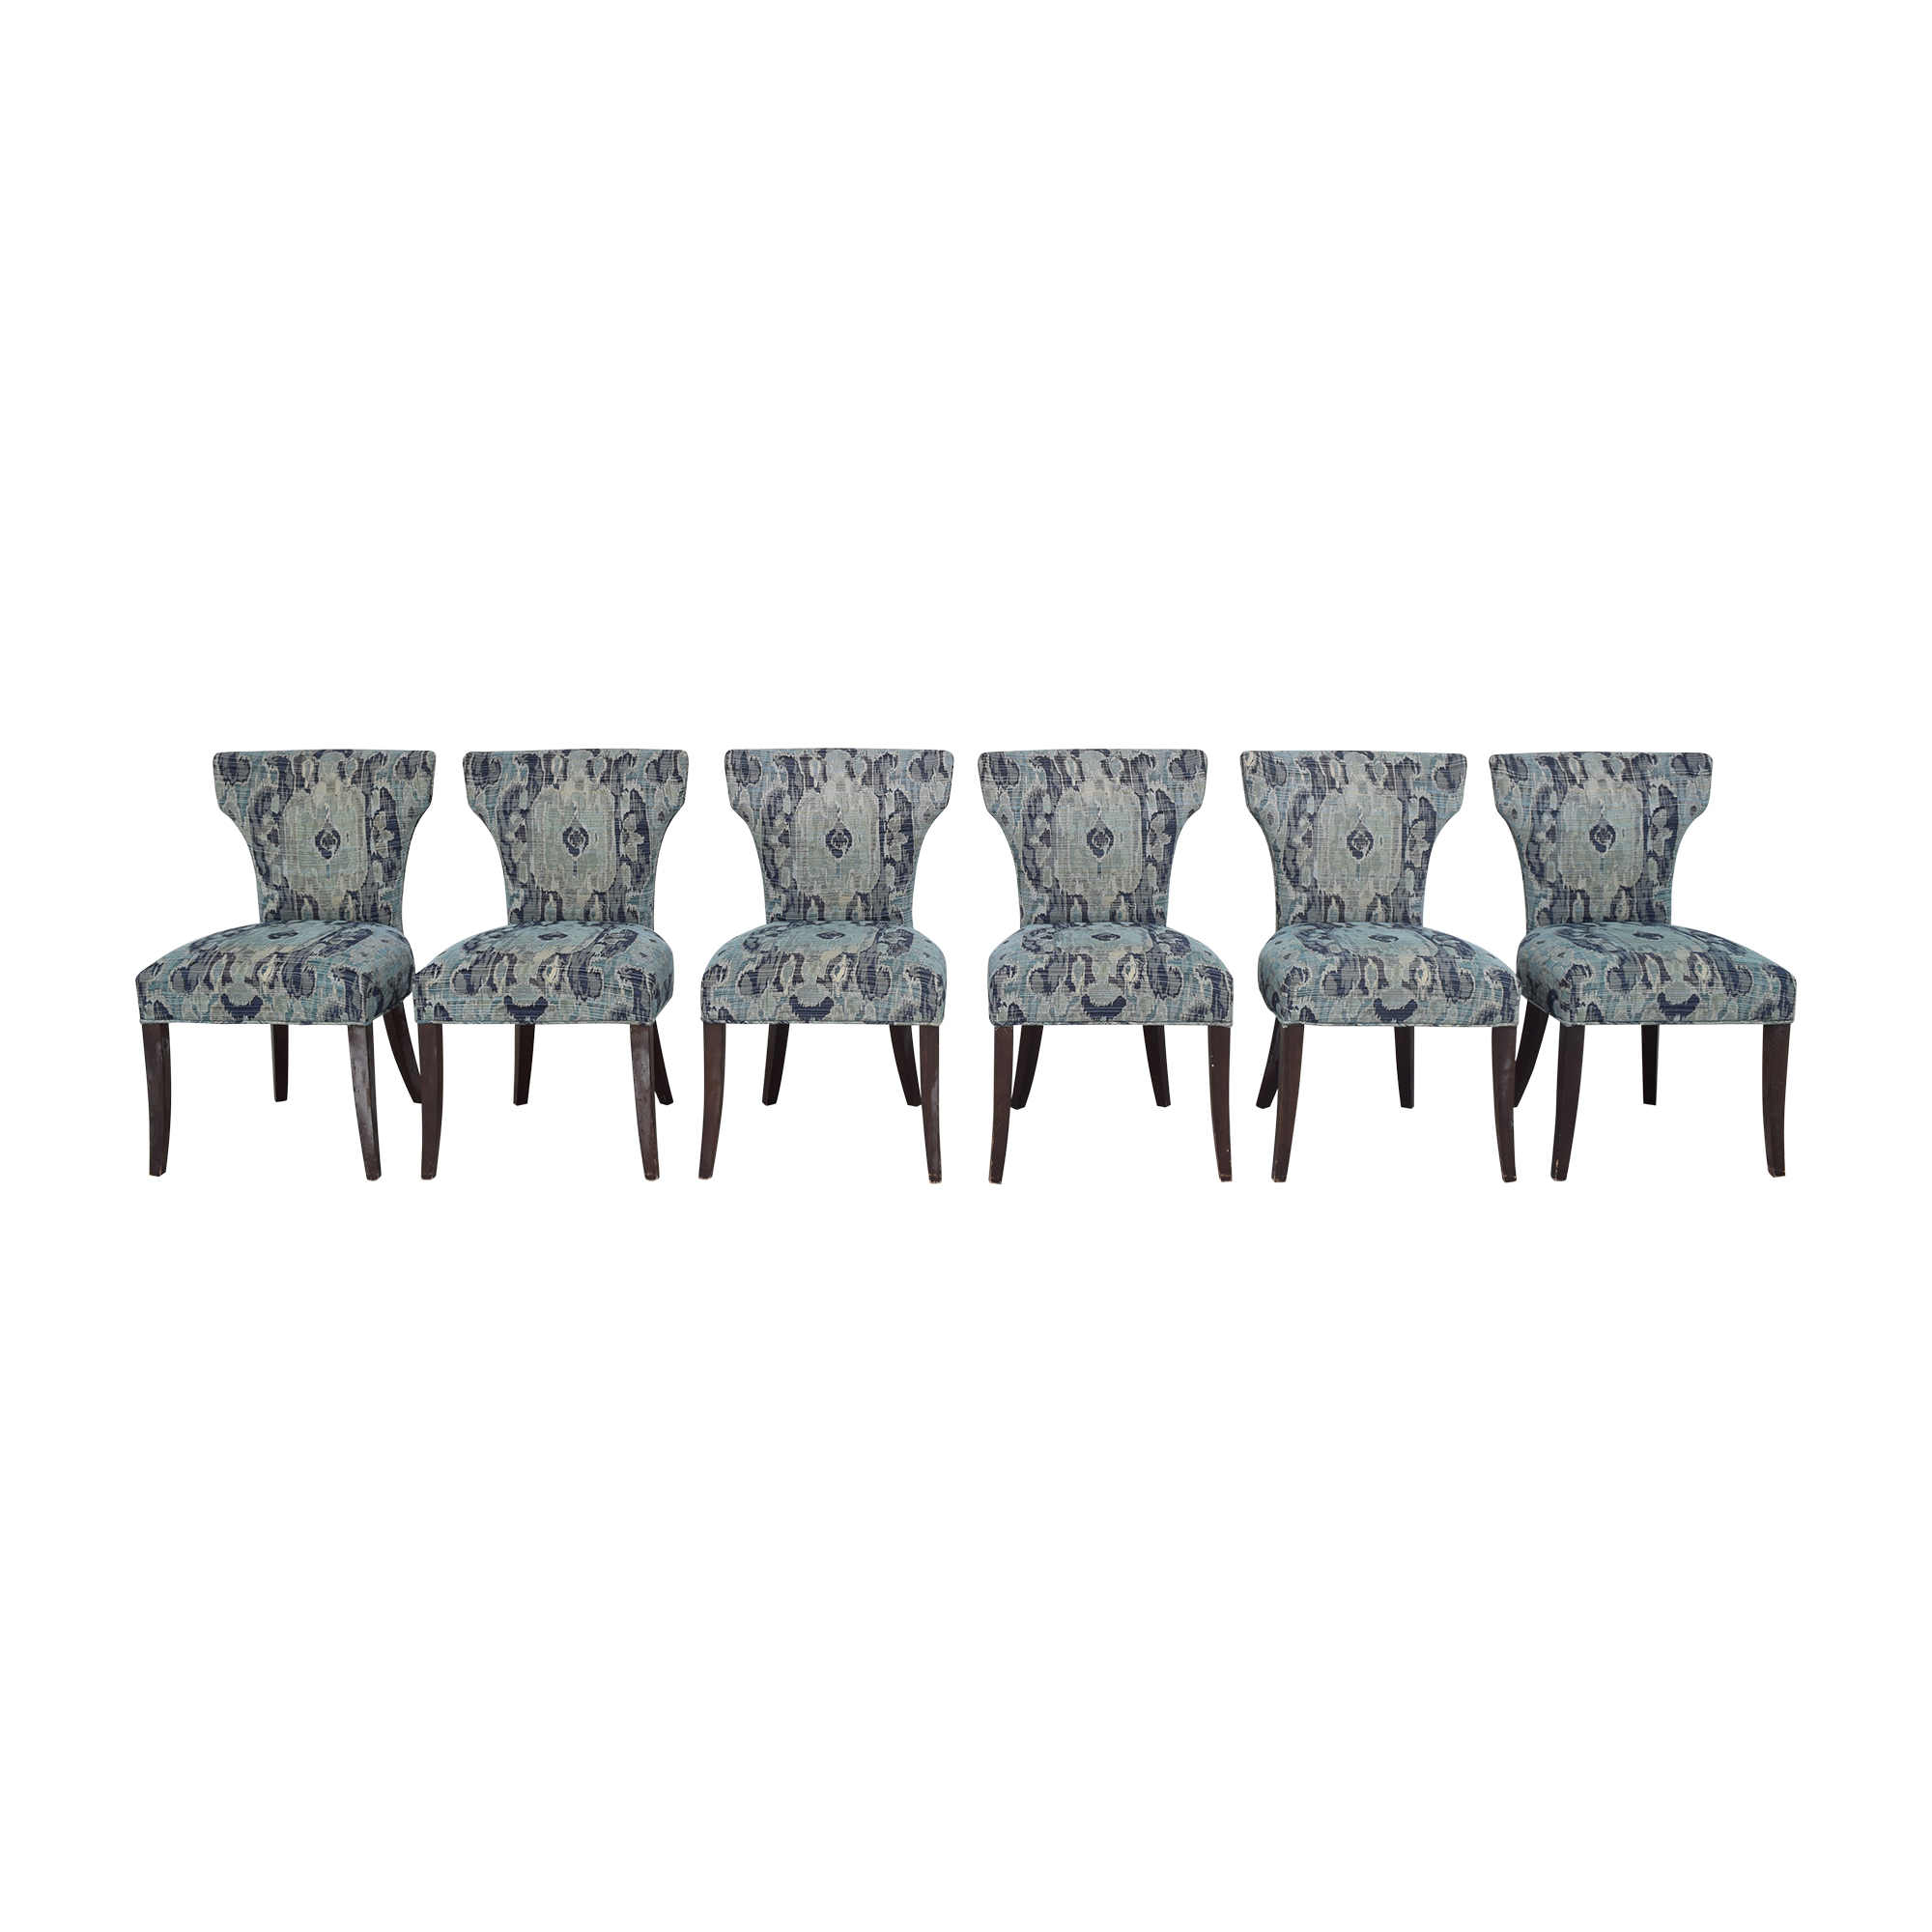 shop Crate & Barrel Sasha Dining Side Chairs Crate & Barrel Dining Chairs